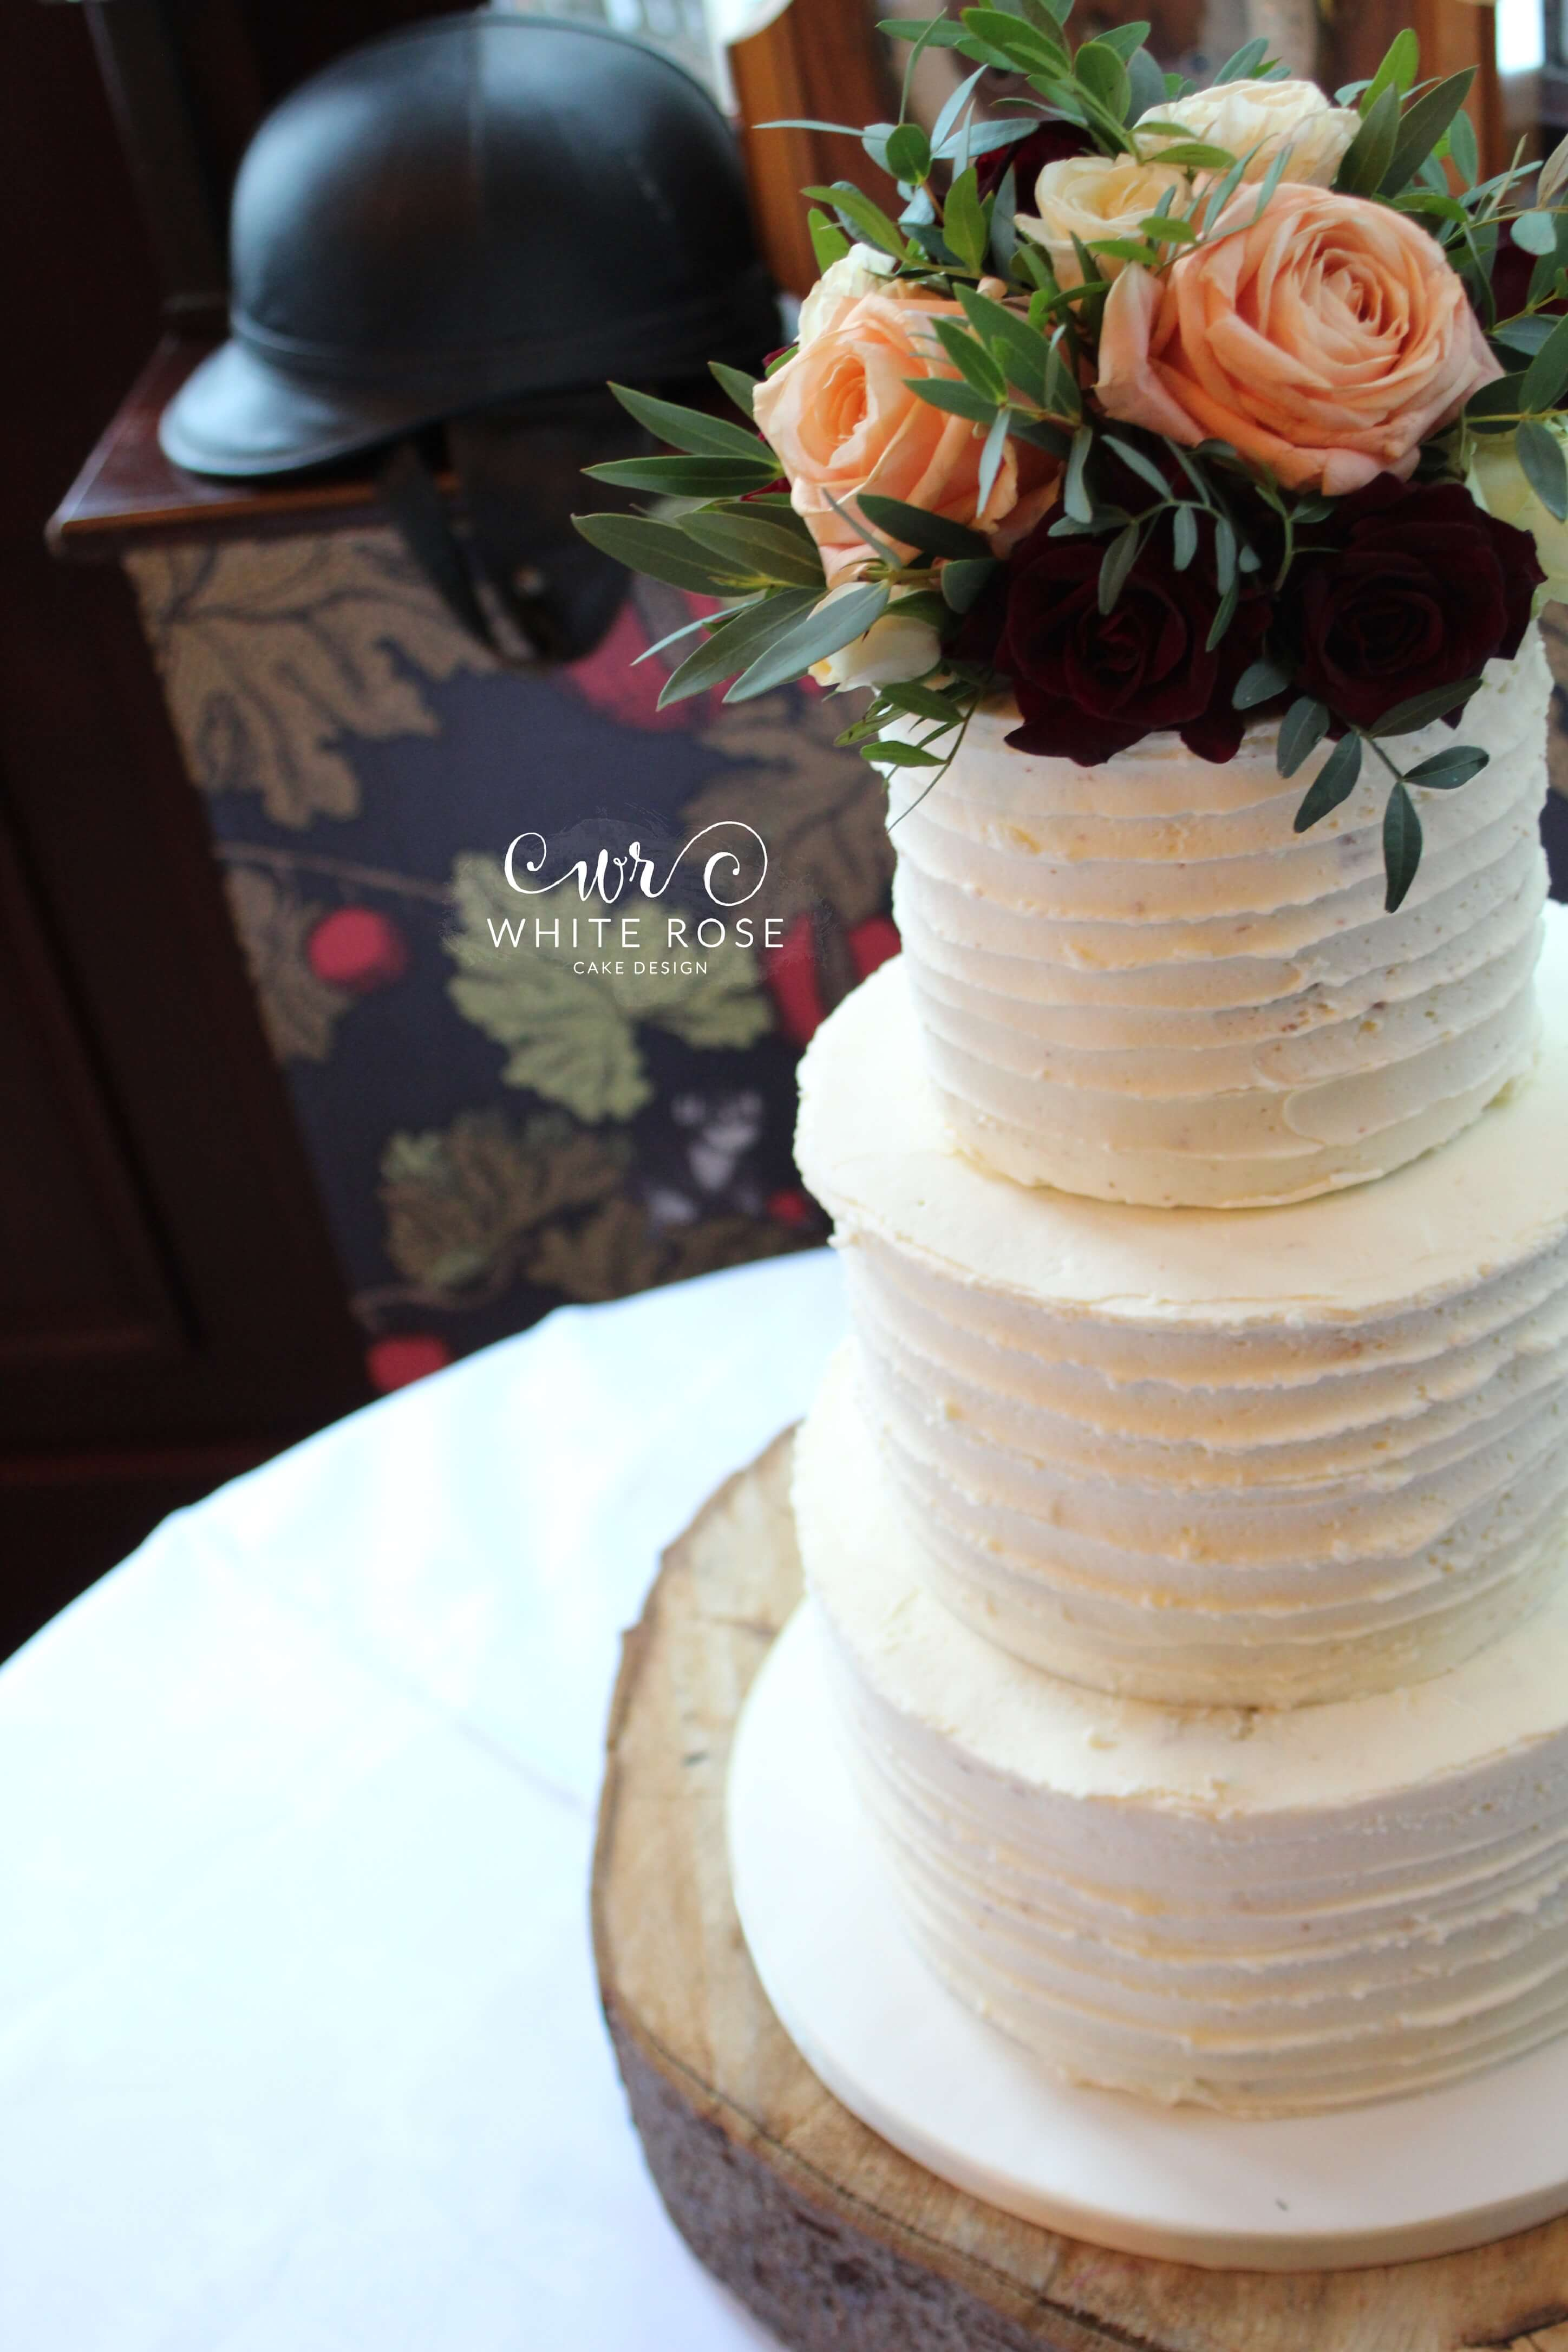 Rustic Winter Wedding Cake With Buttercream Finish By White Rose Design Luxury Maker In Holmfirth West Yorkshire 1